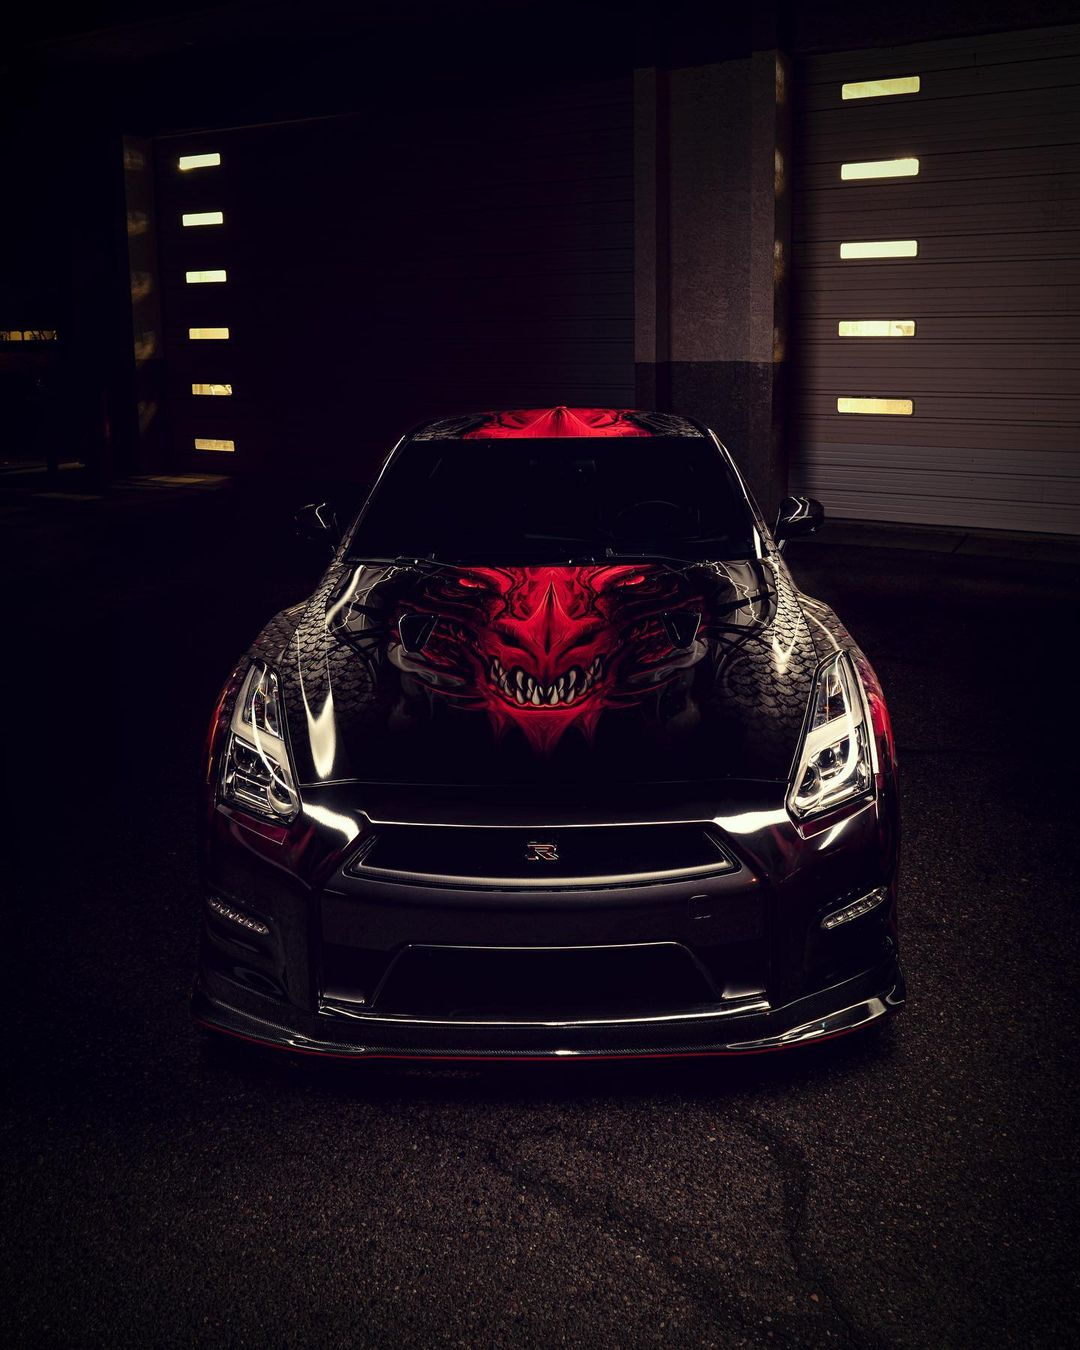 GTR with artistic print wrap in Scottsdale.